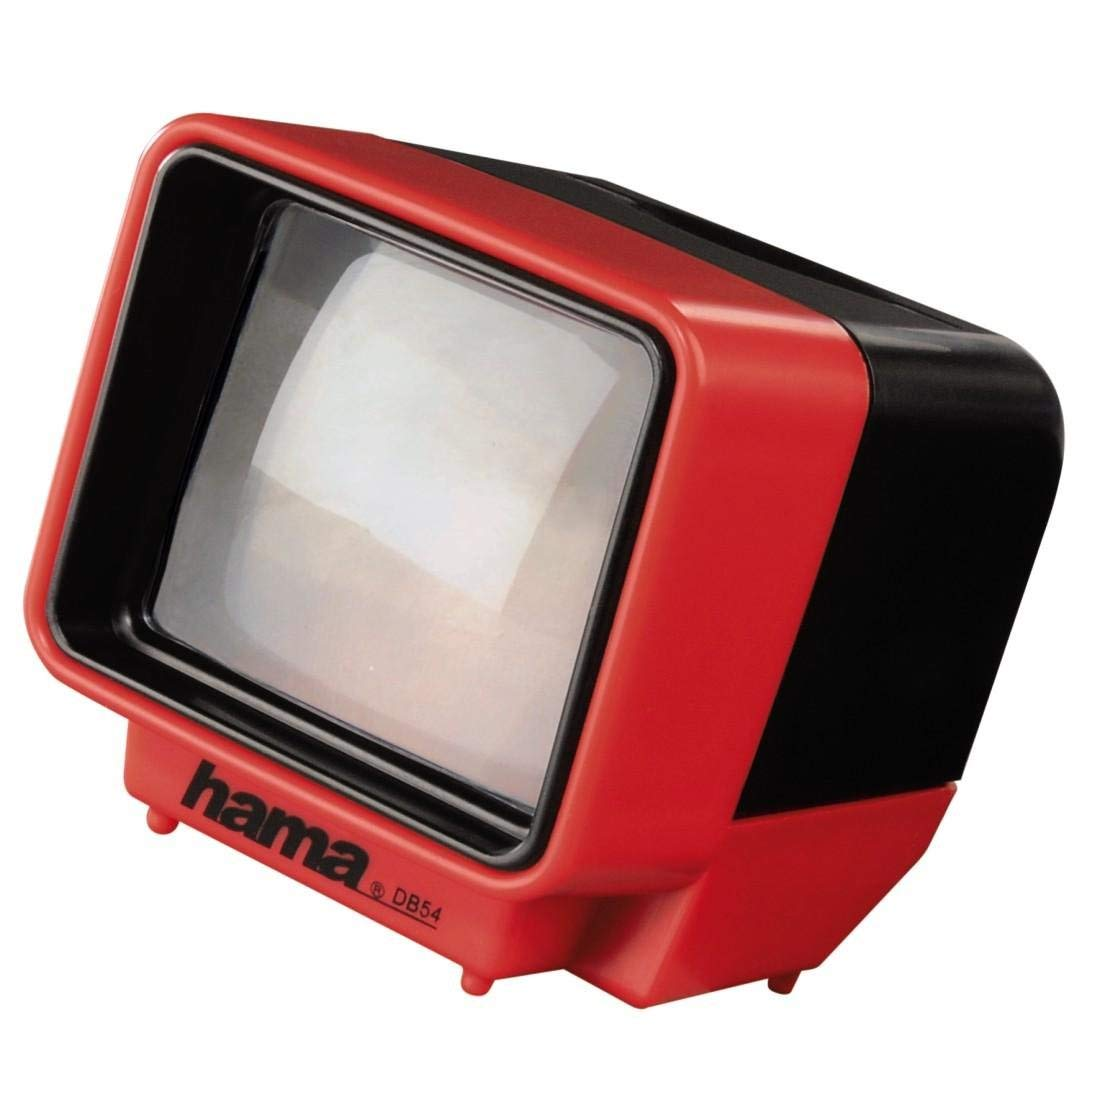 Hama Slide Viewer with 3x Magnification. Taxes are Inlcuded! 00001654